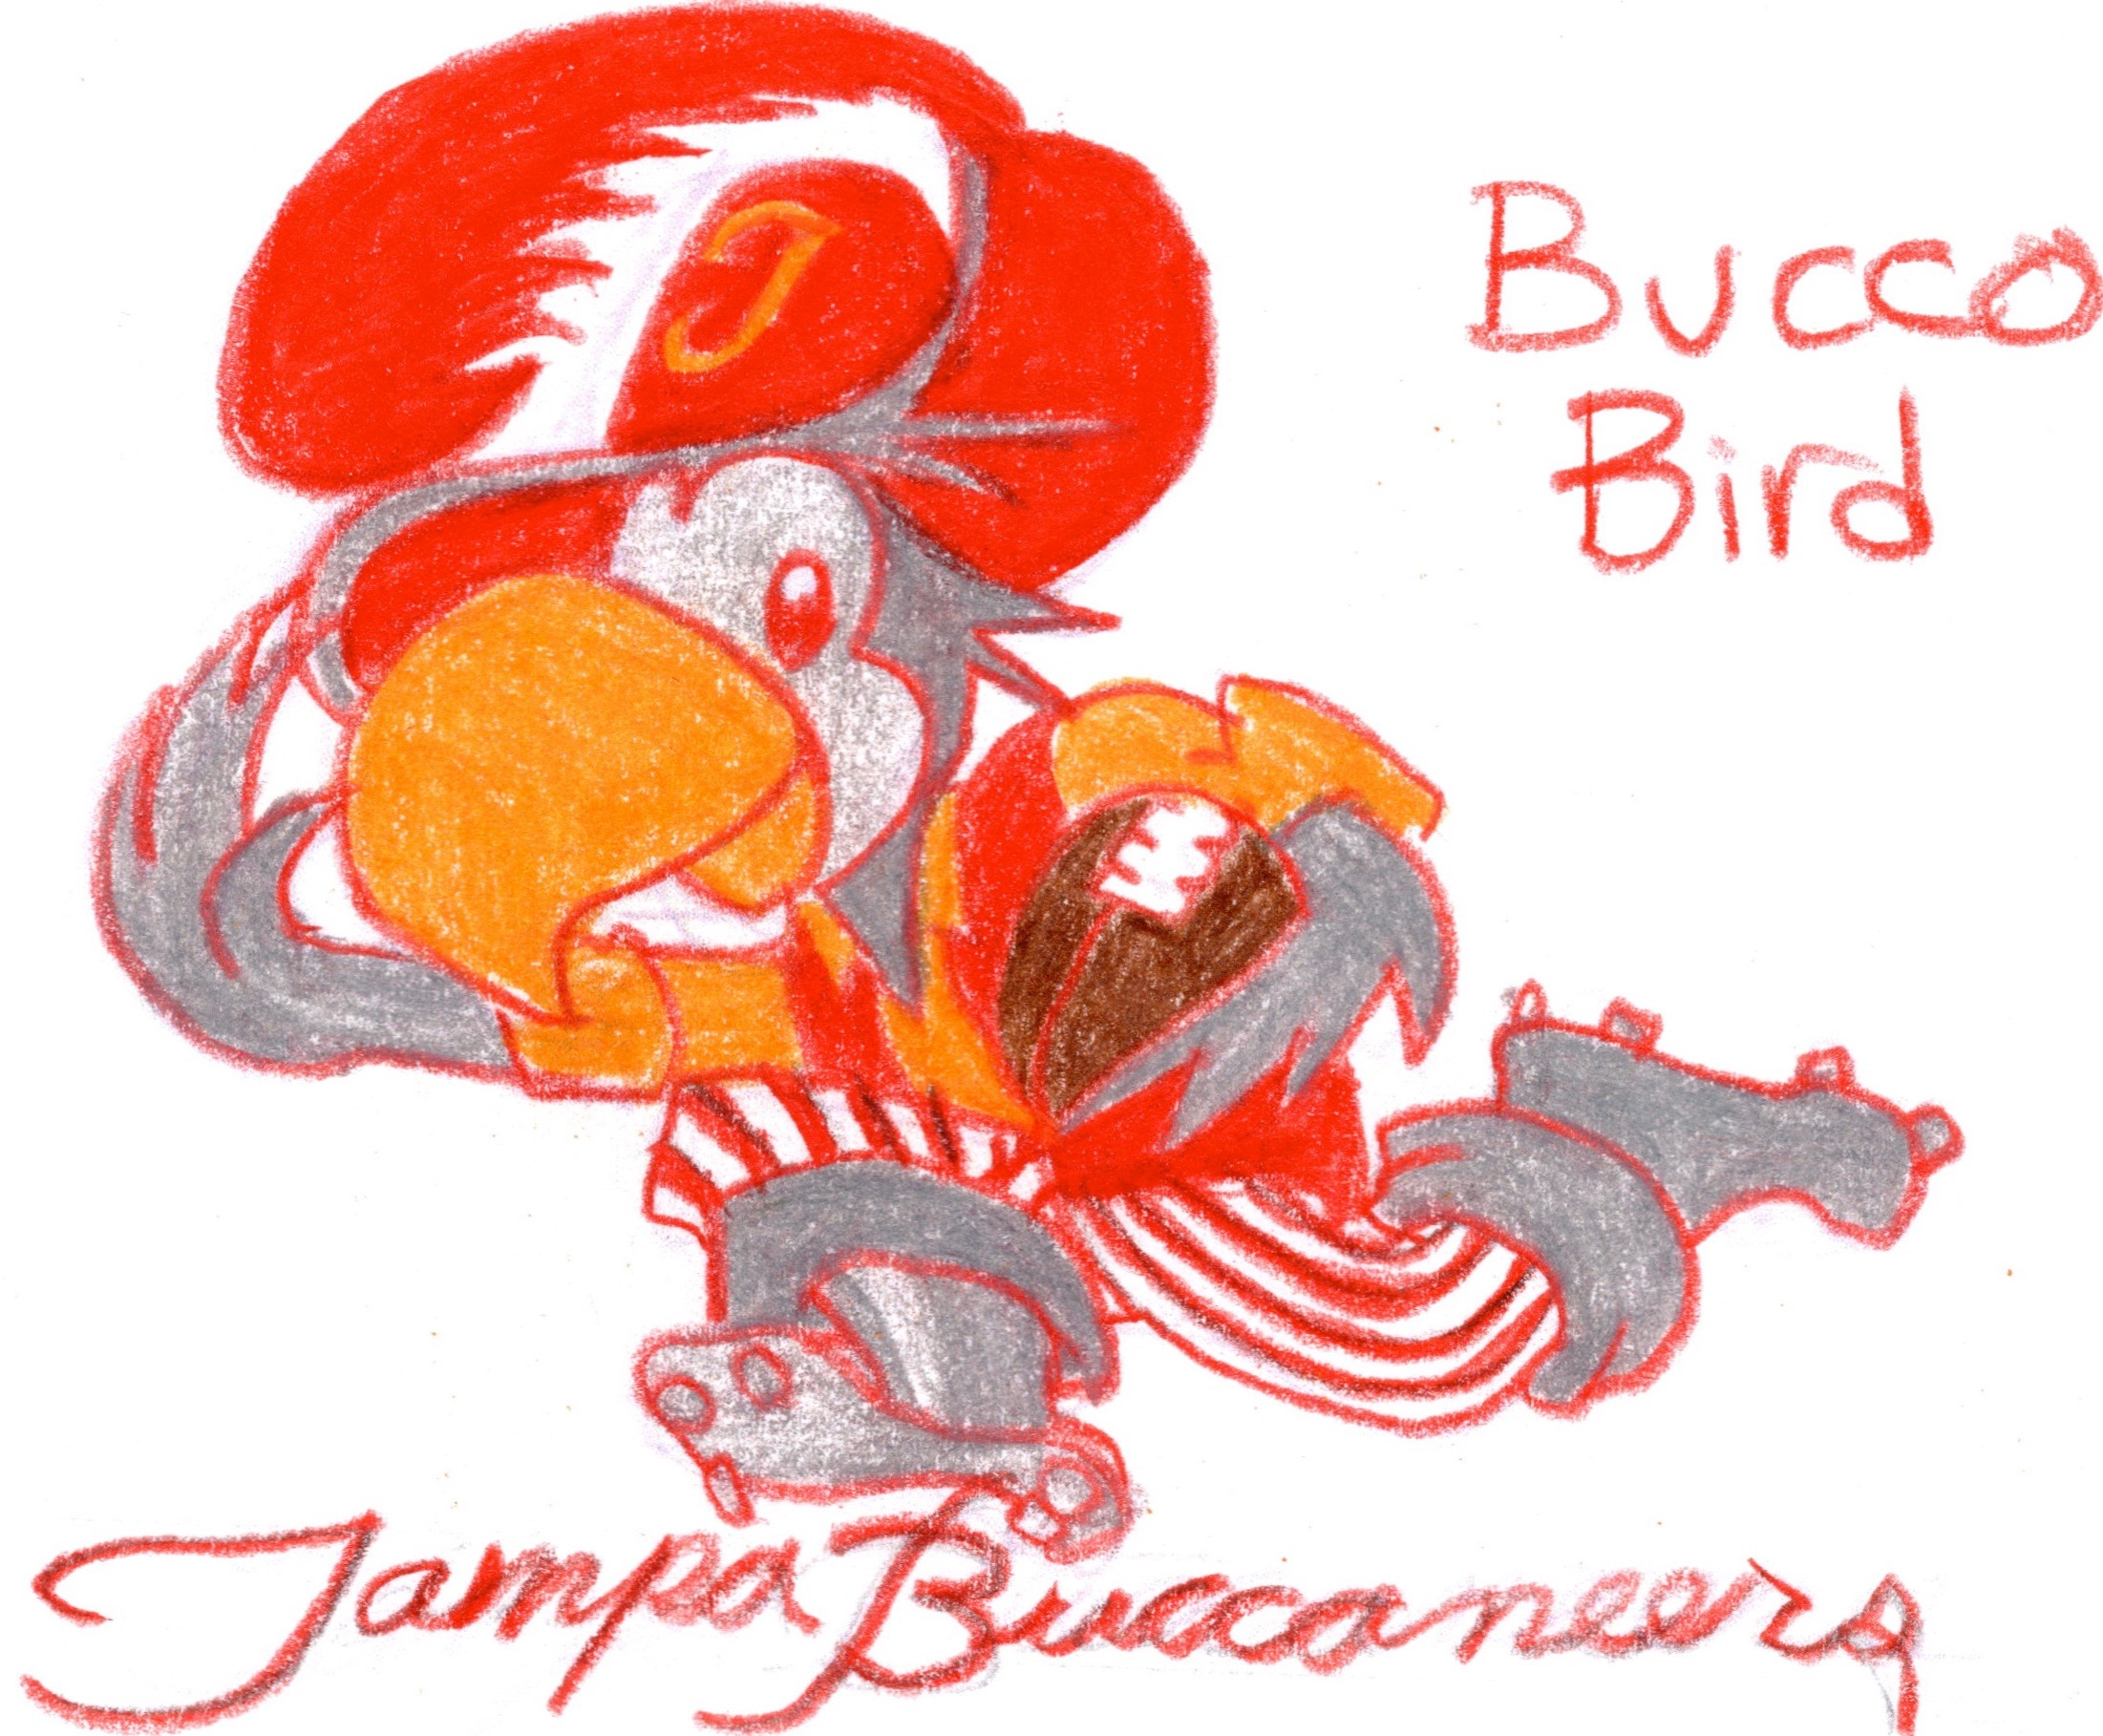 uniwatch tampa bay buccaneers redesign contest bierbaum